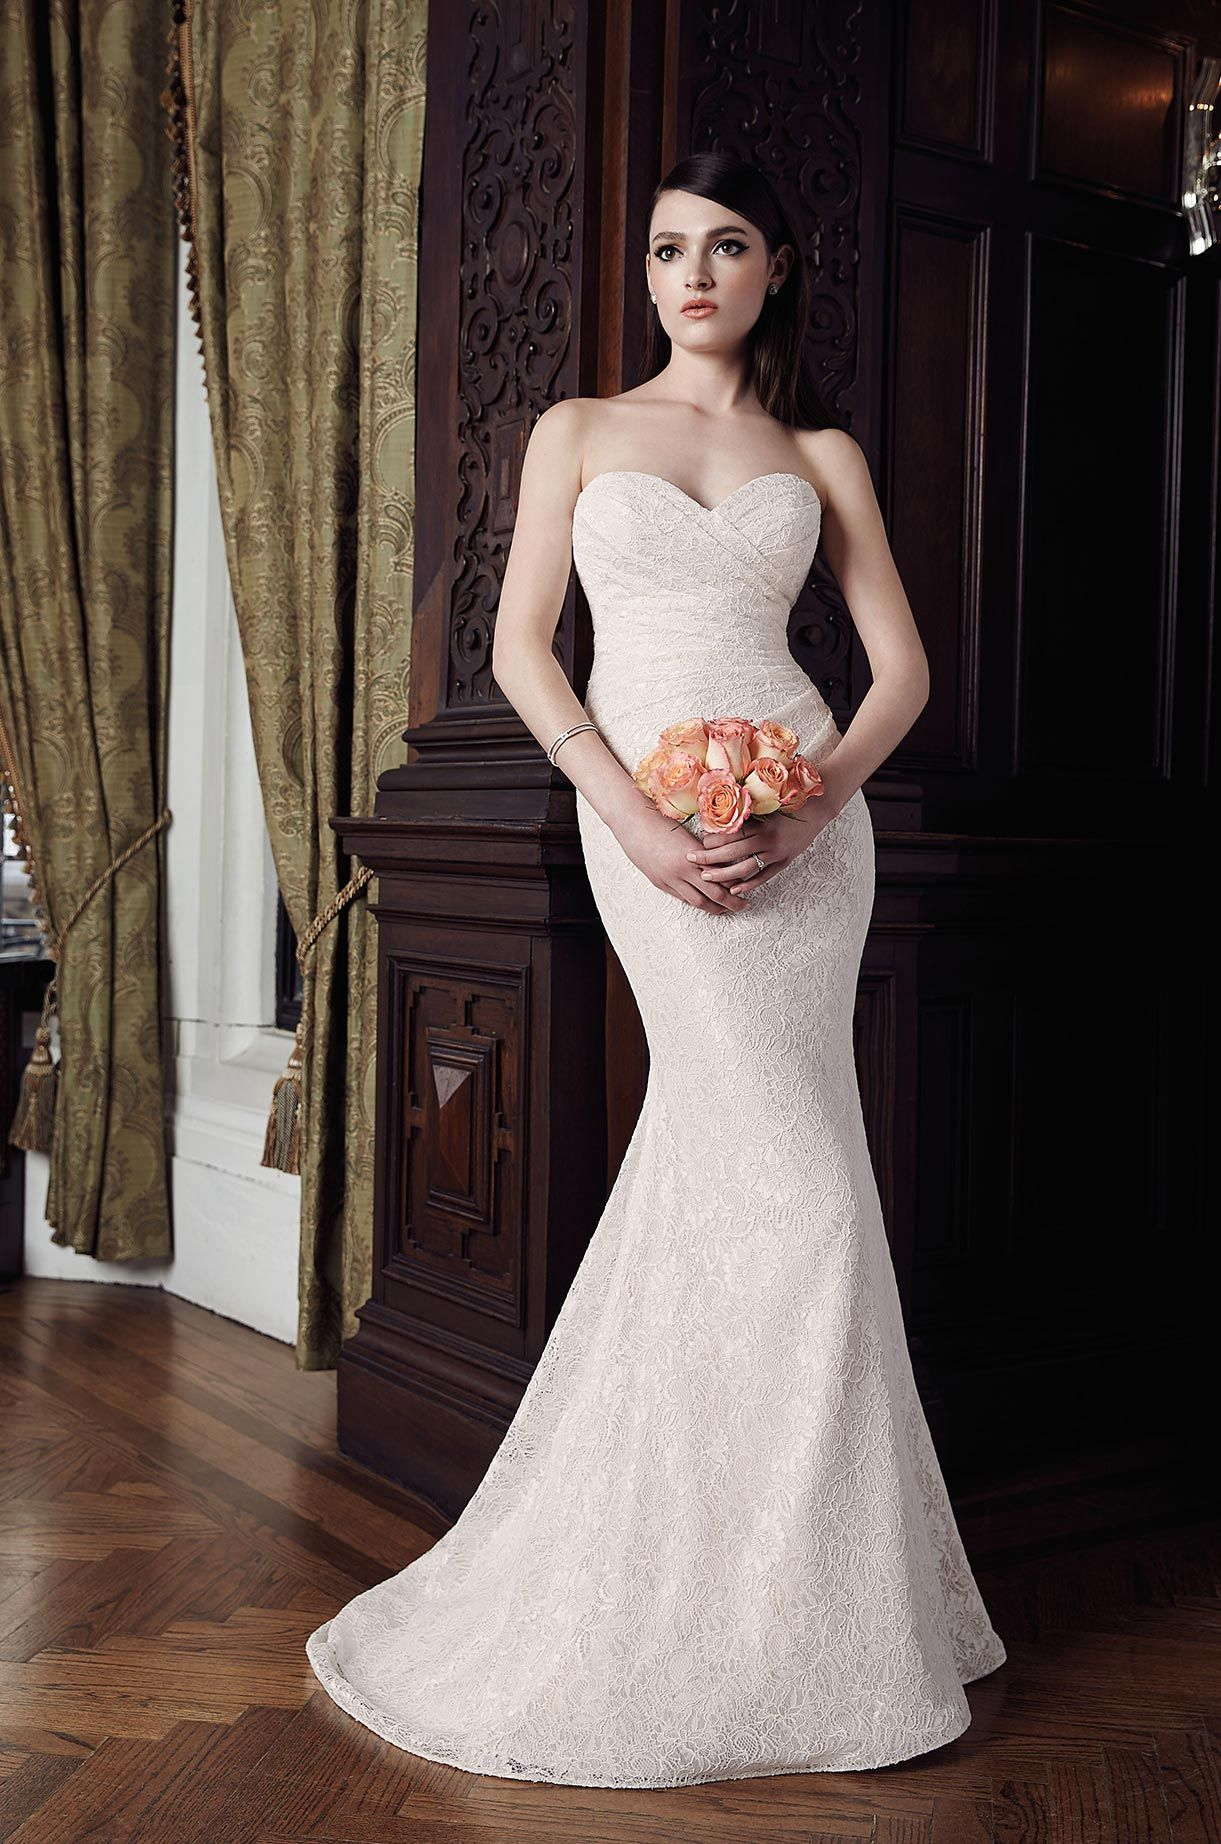 Lace dress styles for wedding  Ruched Lace Wedding Dress  Style   Mikaella bridal Lace